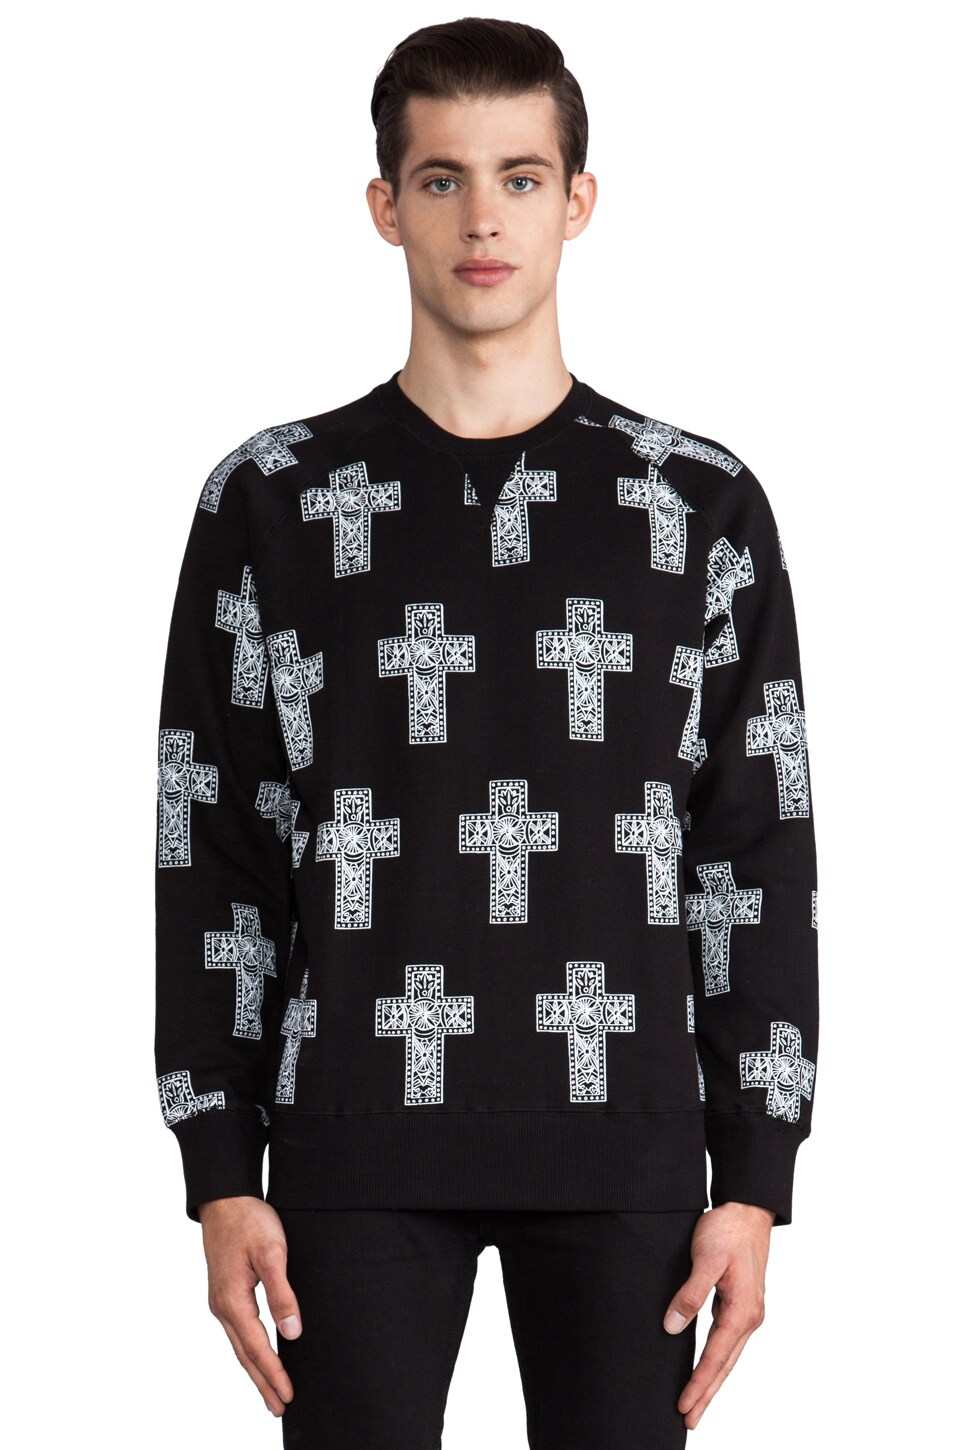 Eleven Paris Valoir Graphic Sweatshirt in Black